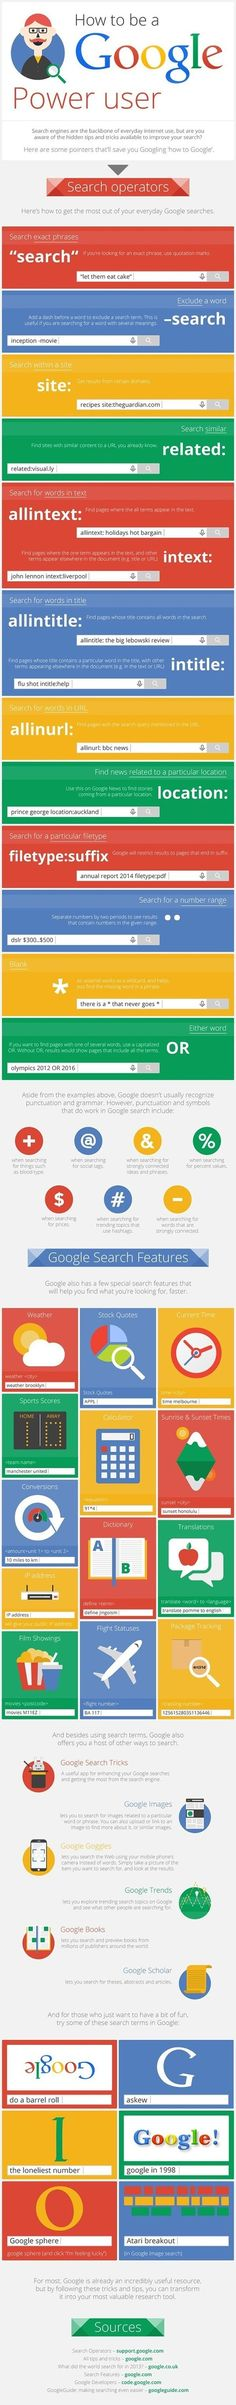 46 Hidden Tips and Tricks to Use Google Search Like a Boss: Infographic